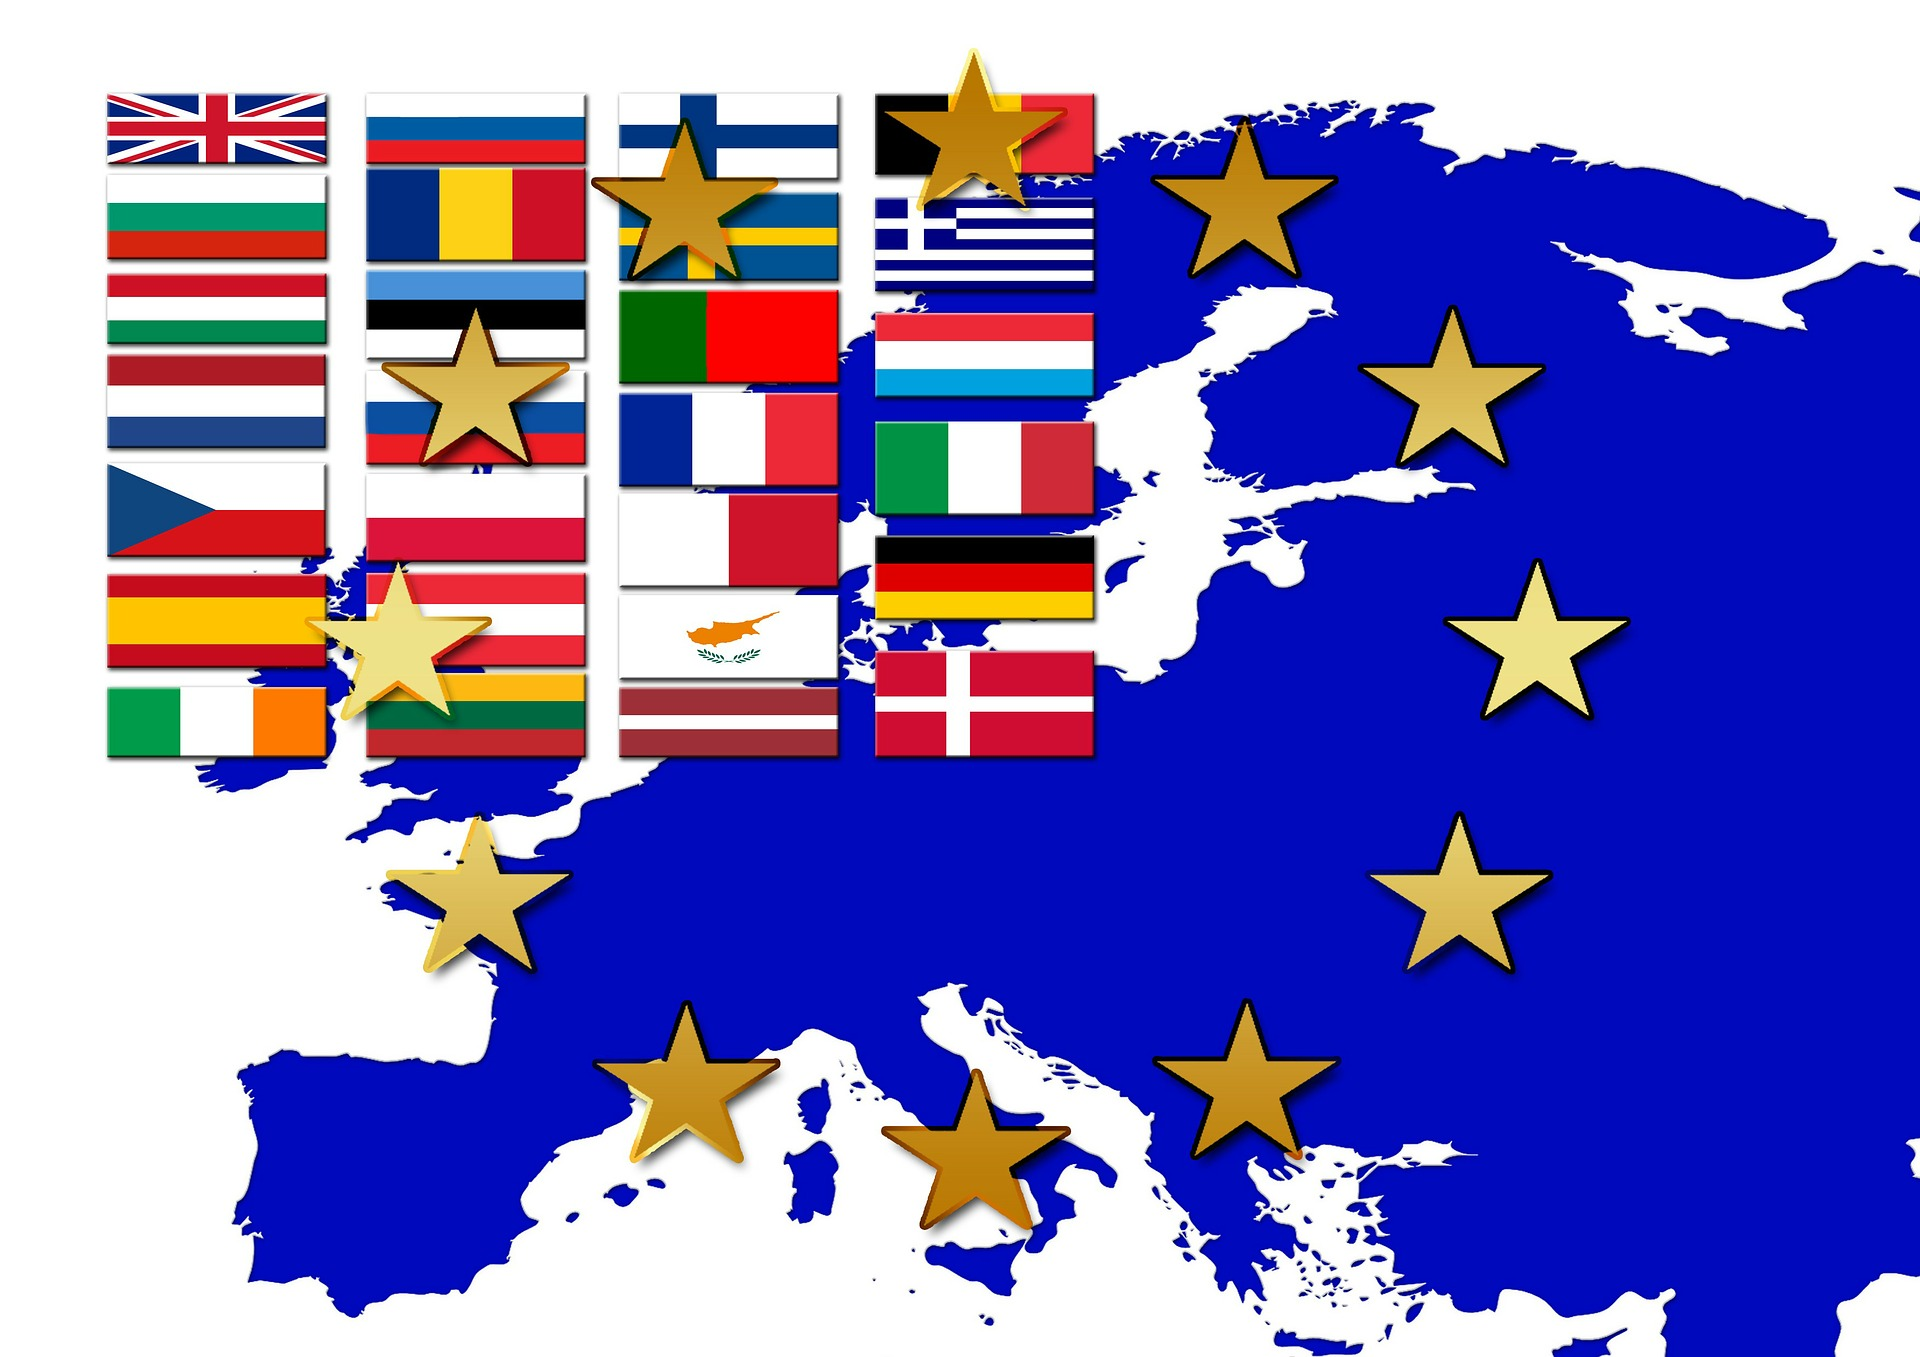 europe 67391 1920 - European Stubbornness at its Best: The Nations That Refuse to Budge